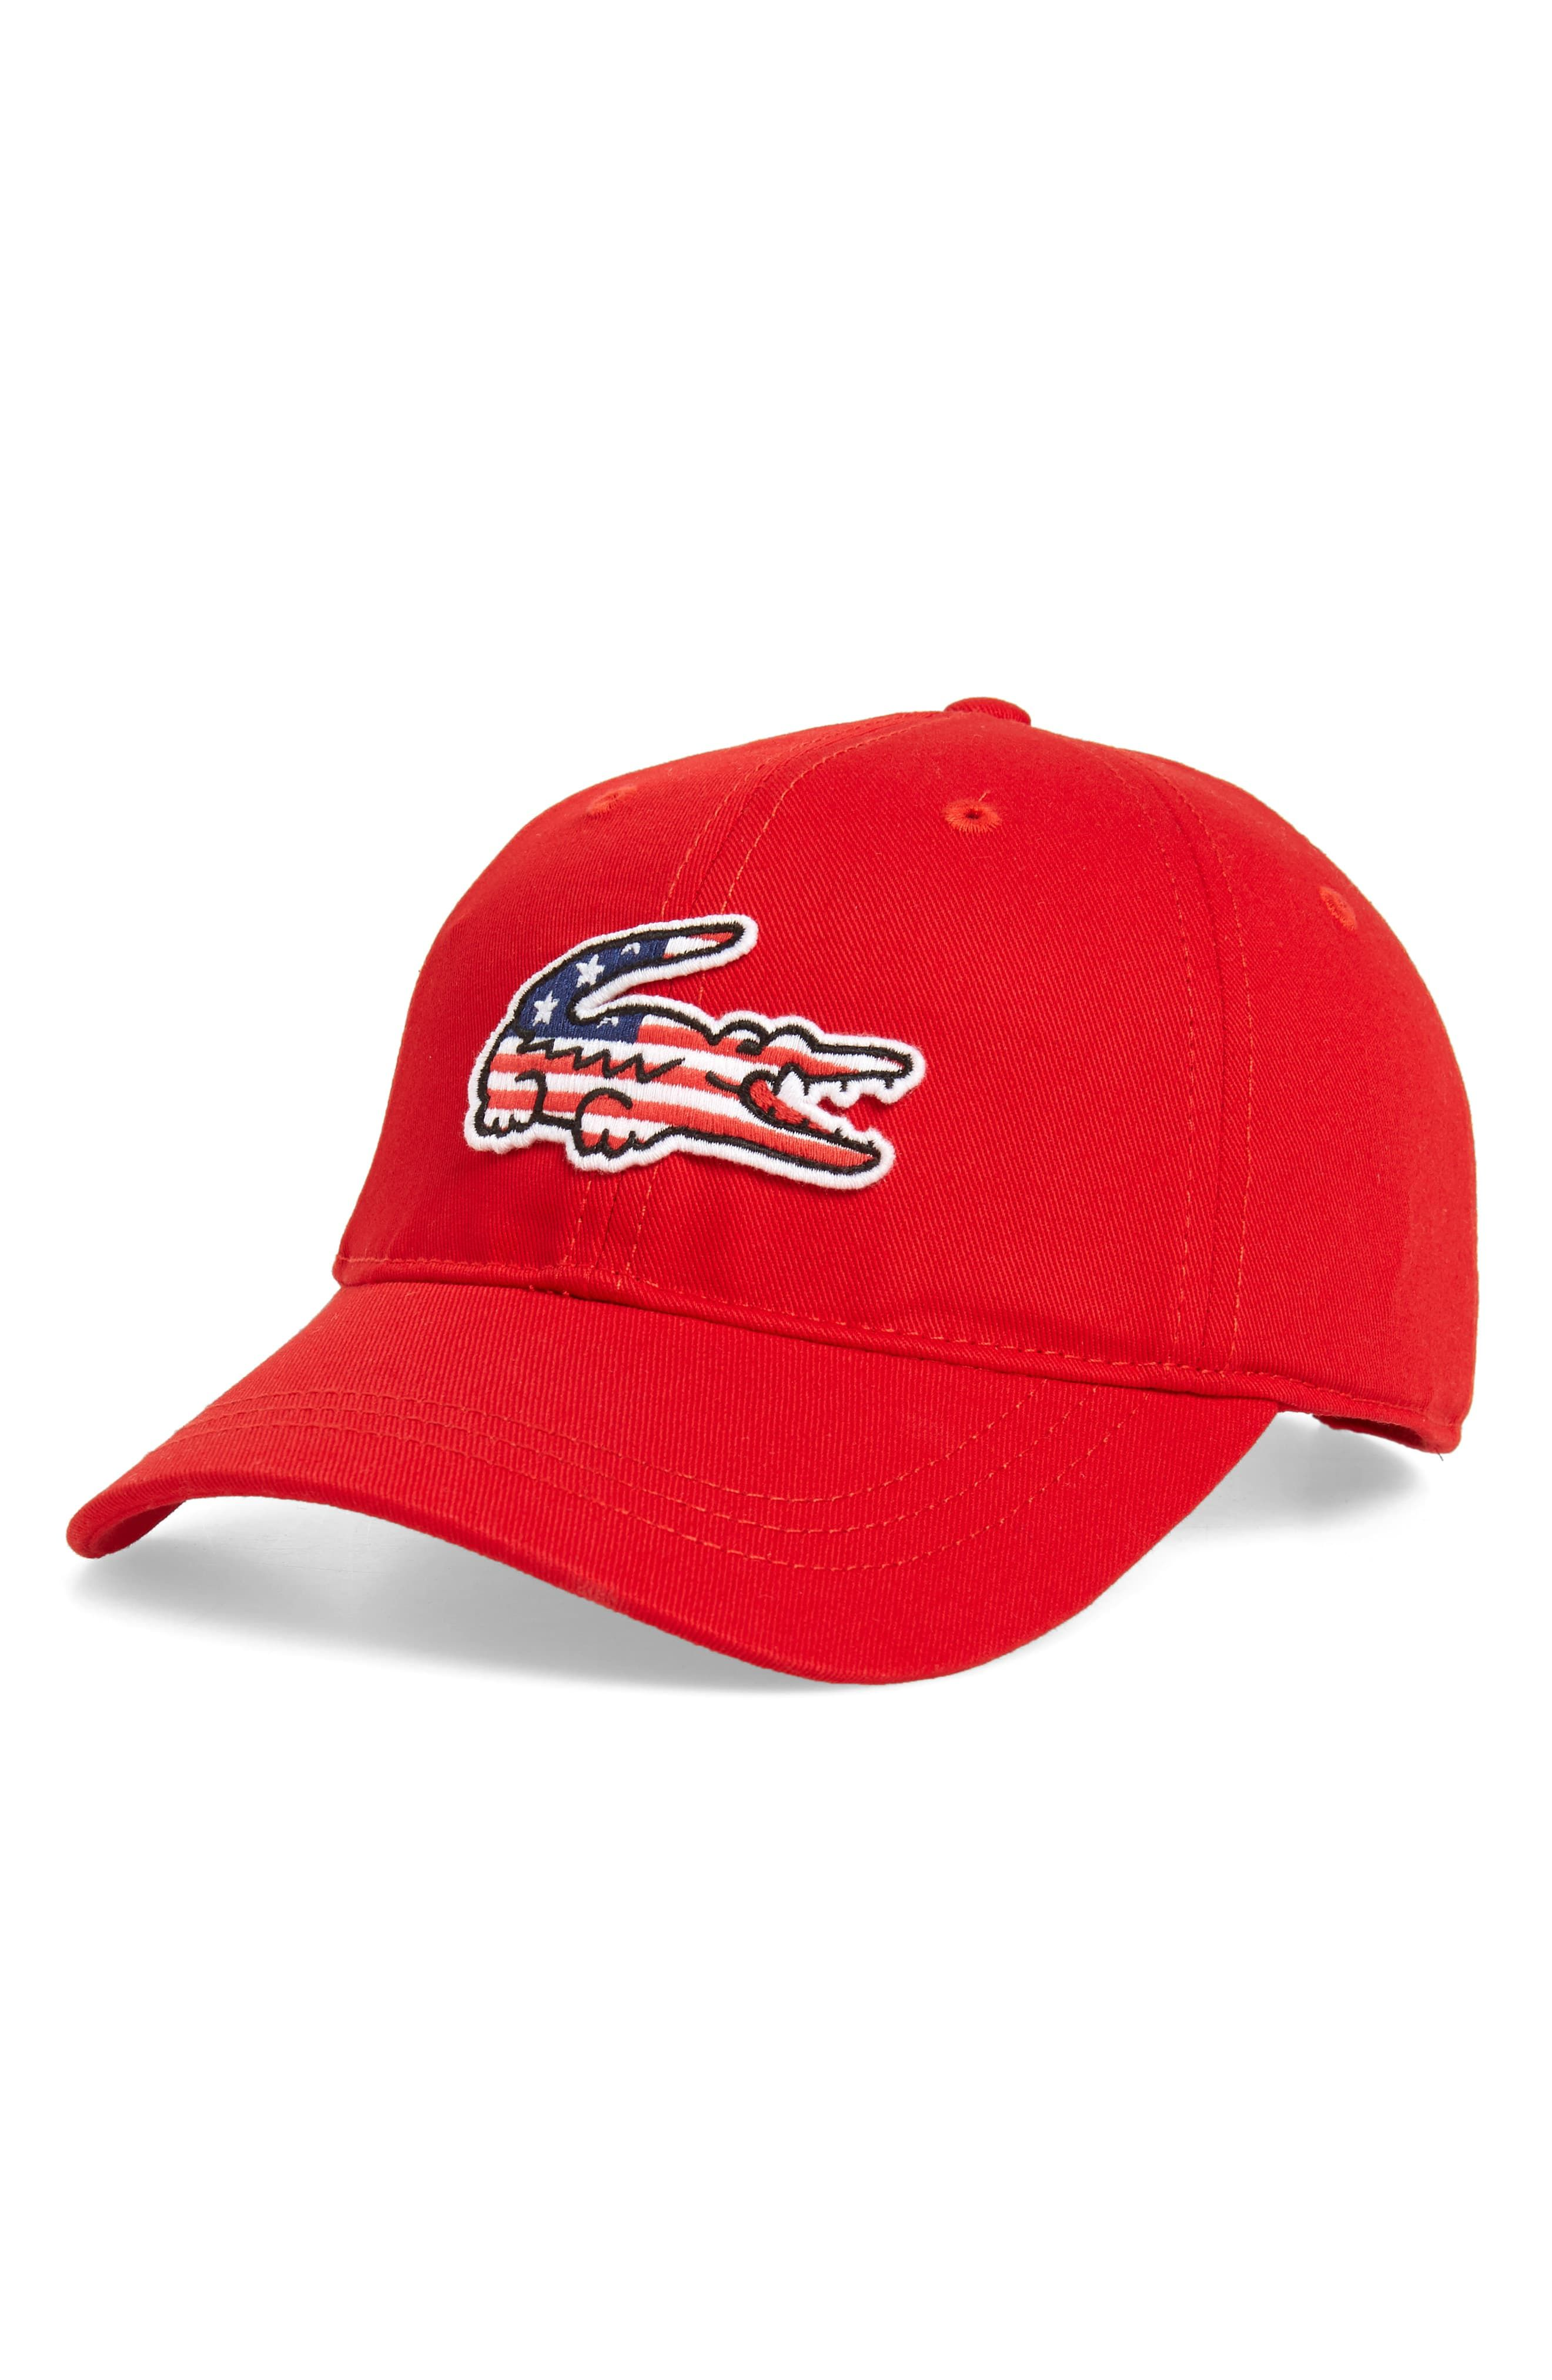 97953be5 Men's Lacoste Big Croc Usa Appliqué Baseball Cap - Red | Products in ...